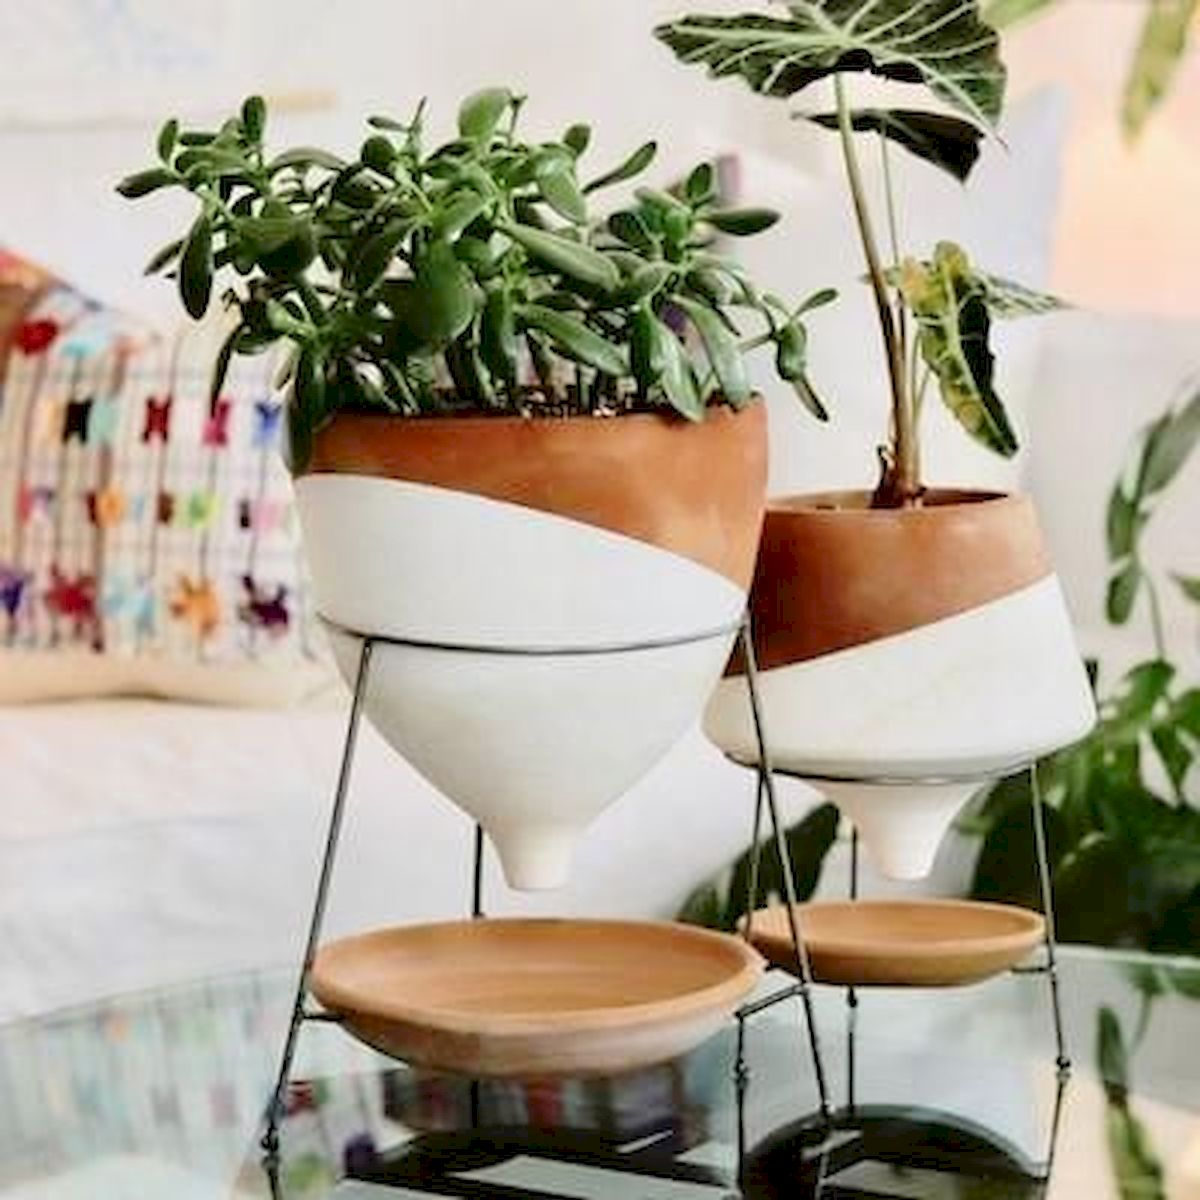 70 Awesome Small Garden Ideas for Apartment (29)